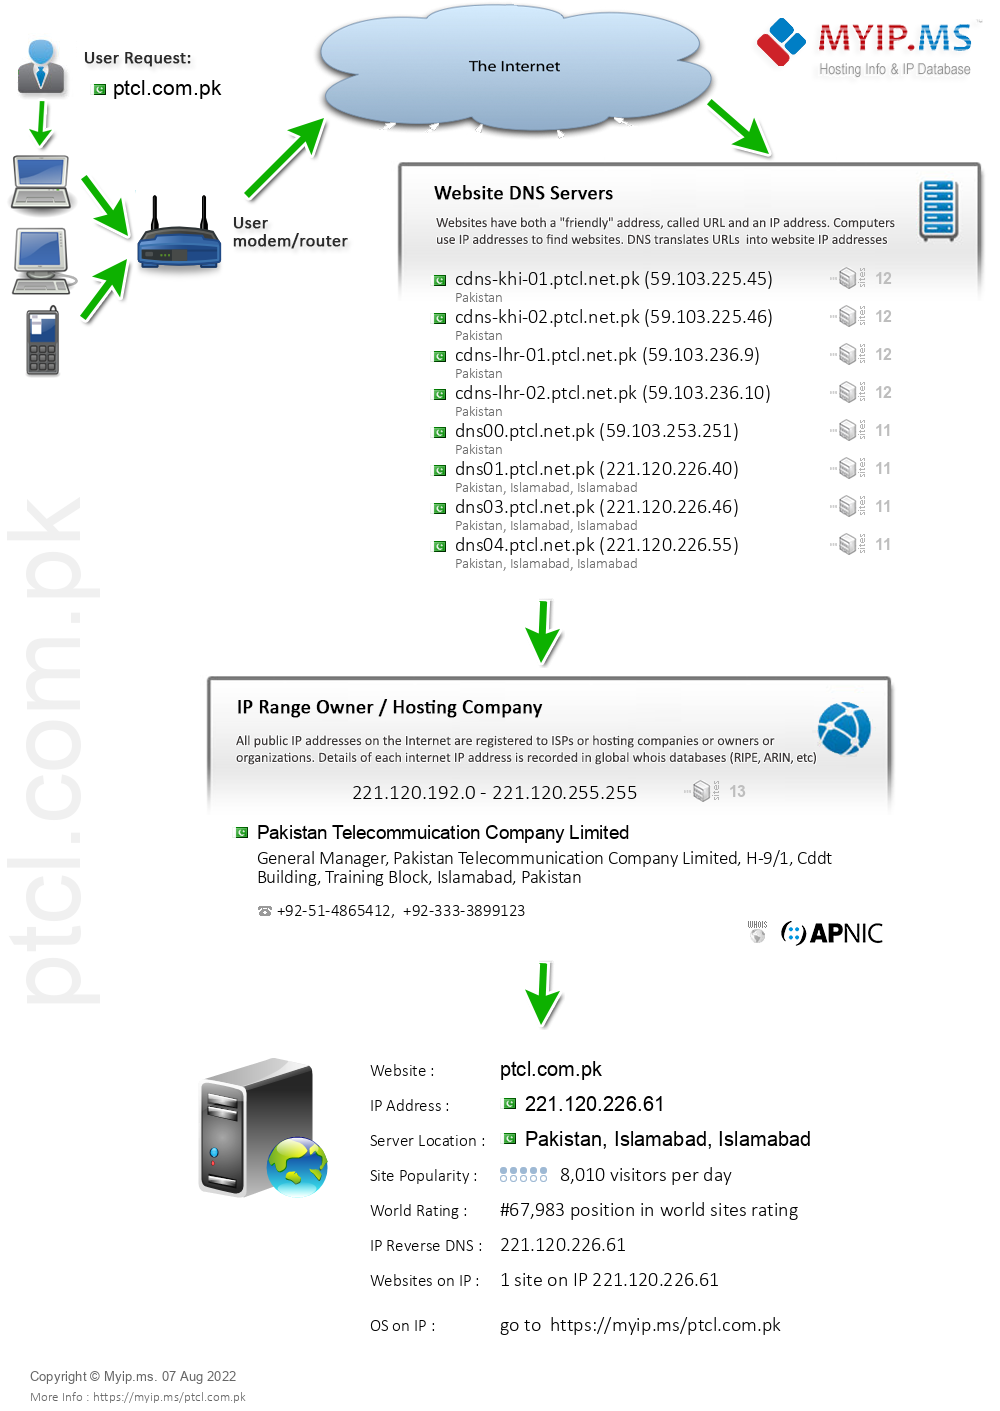 Ptcl.com.pk - Website Hosting Visual IP Diagram